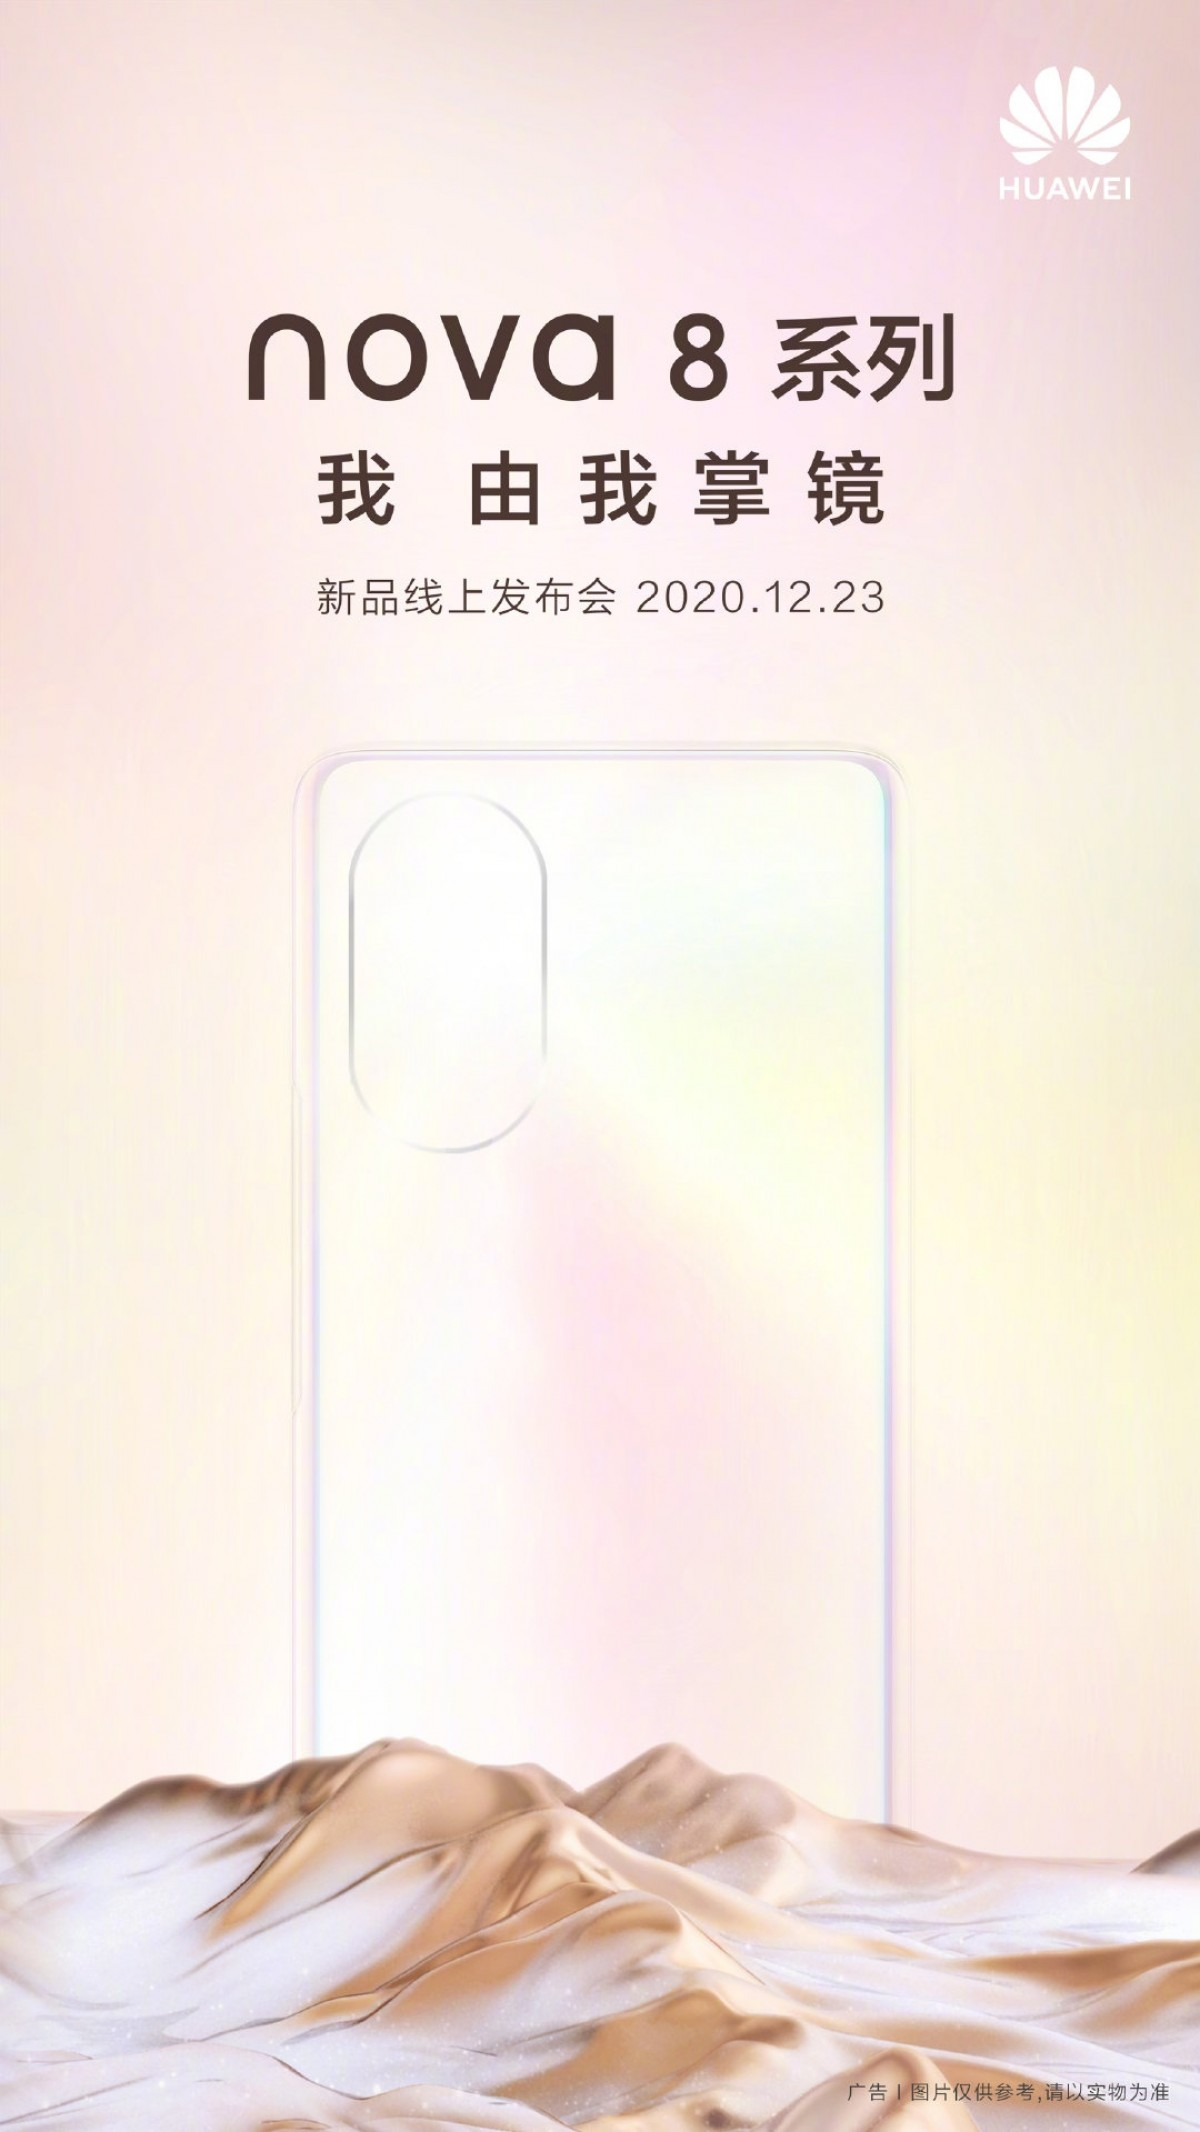 Huawei bringing nova 8 series on Dec 23 with oval camera island